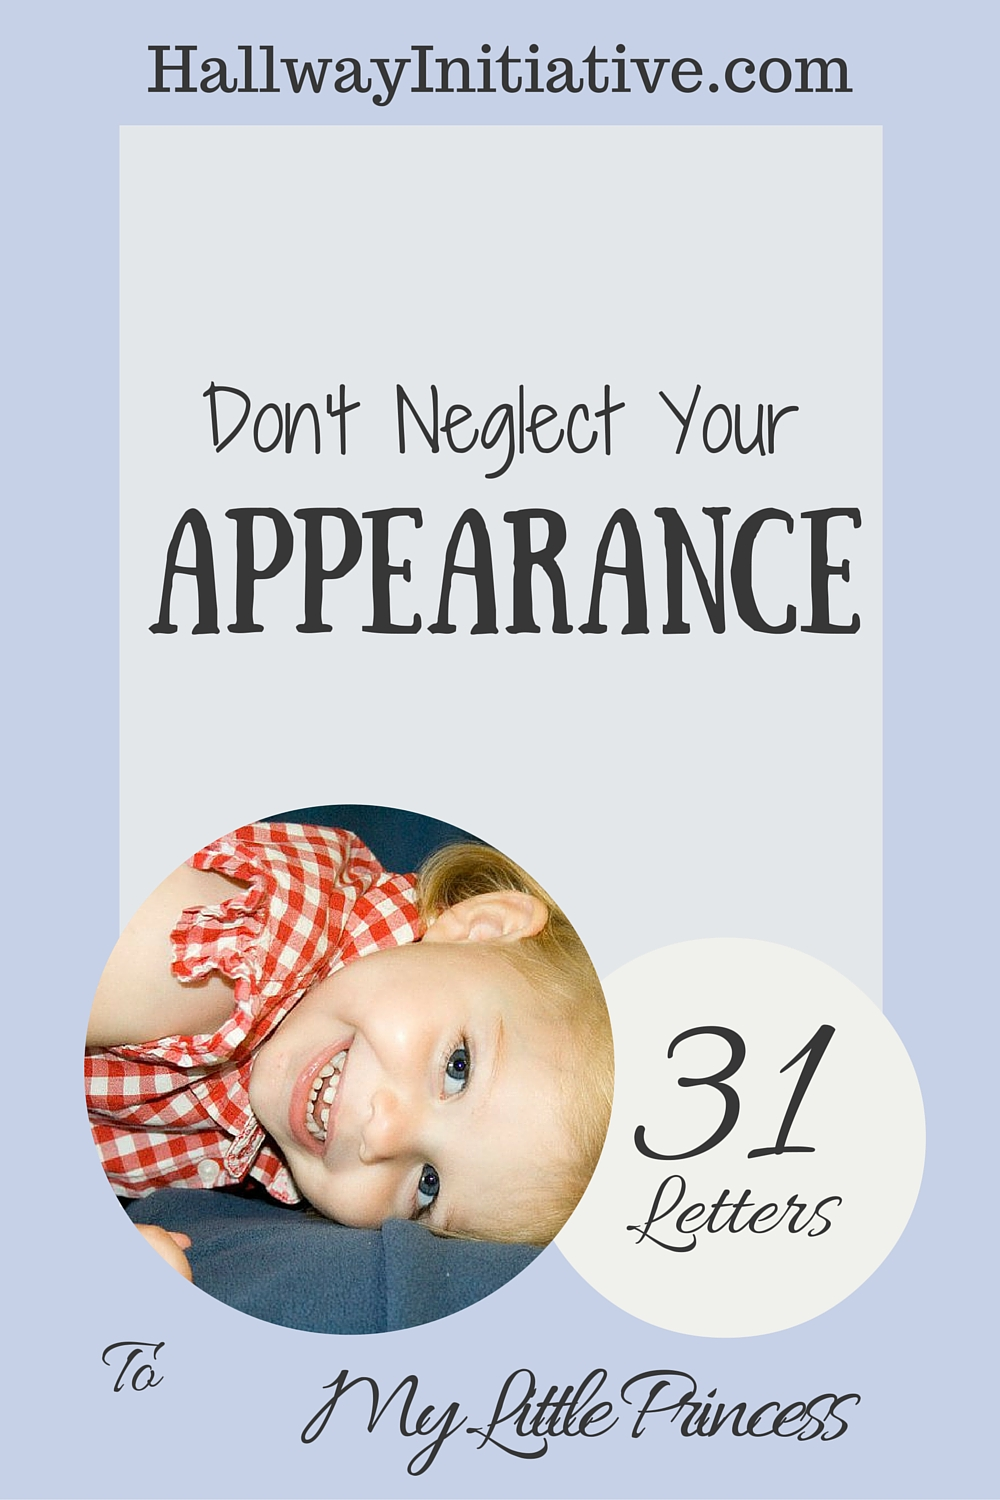 Don't neglect your appearance